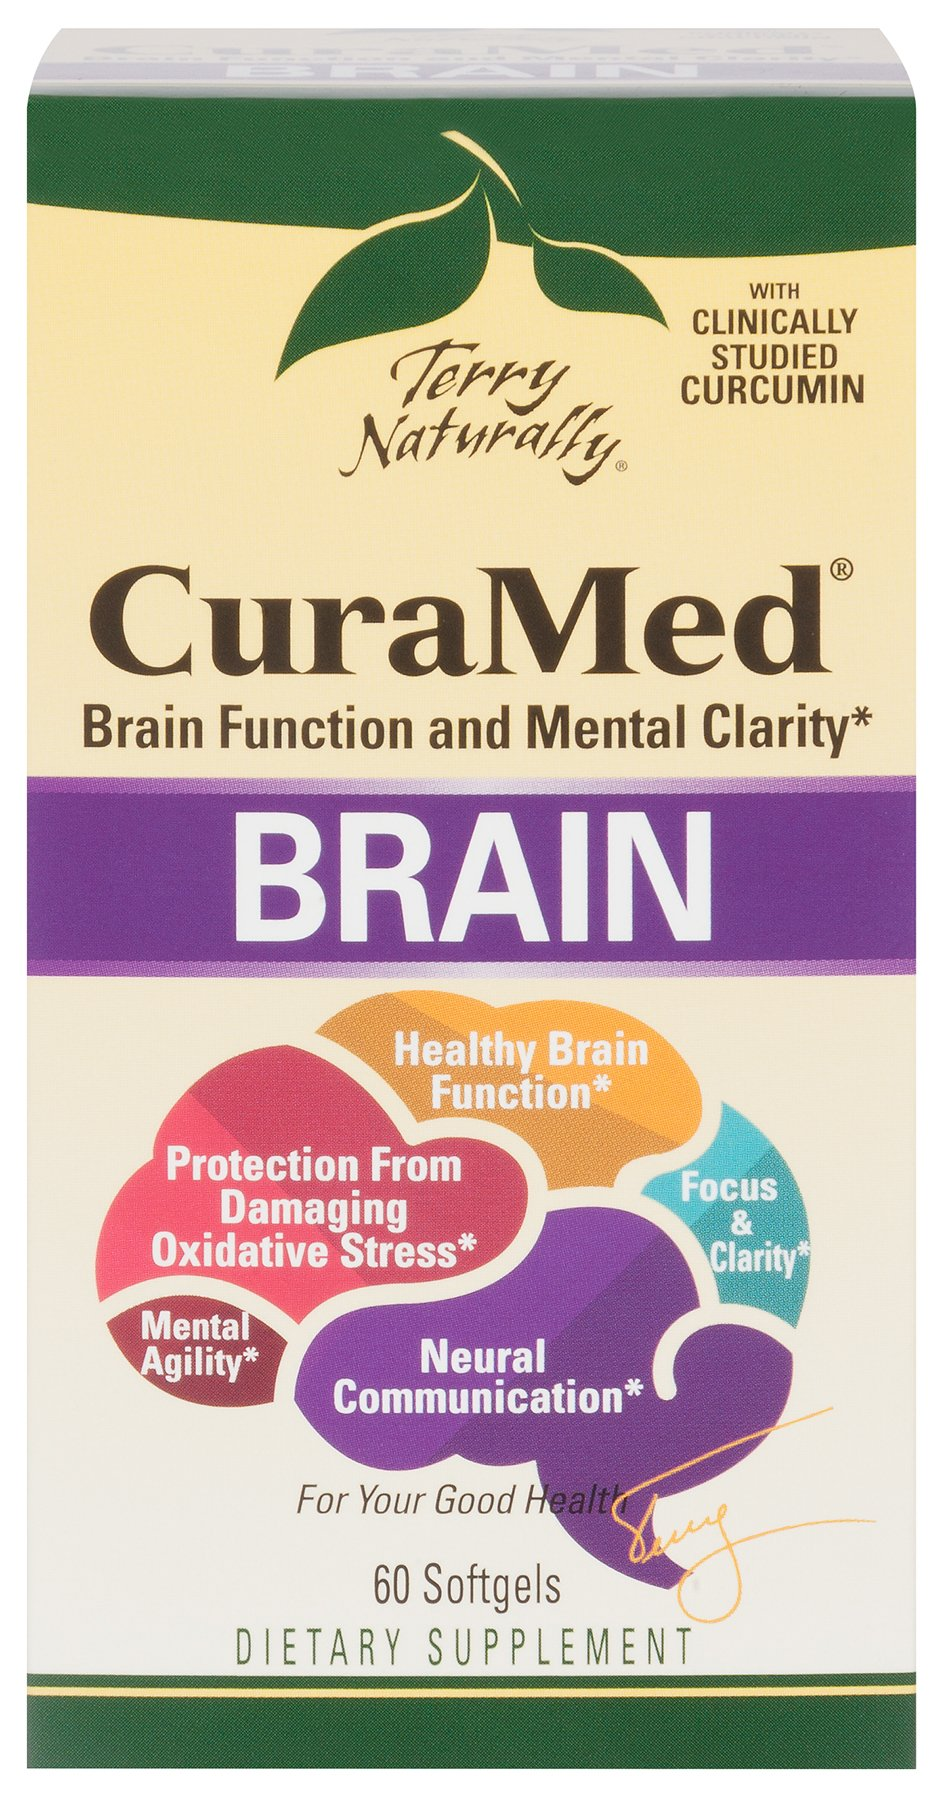 Terry Naturally Curamed Brain - 60 softgels